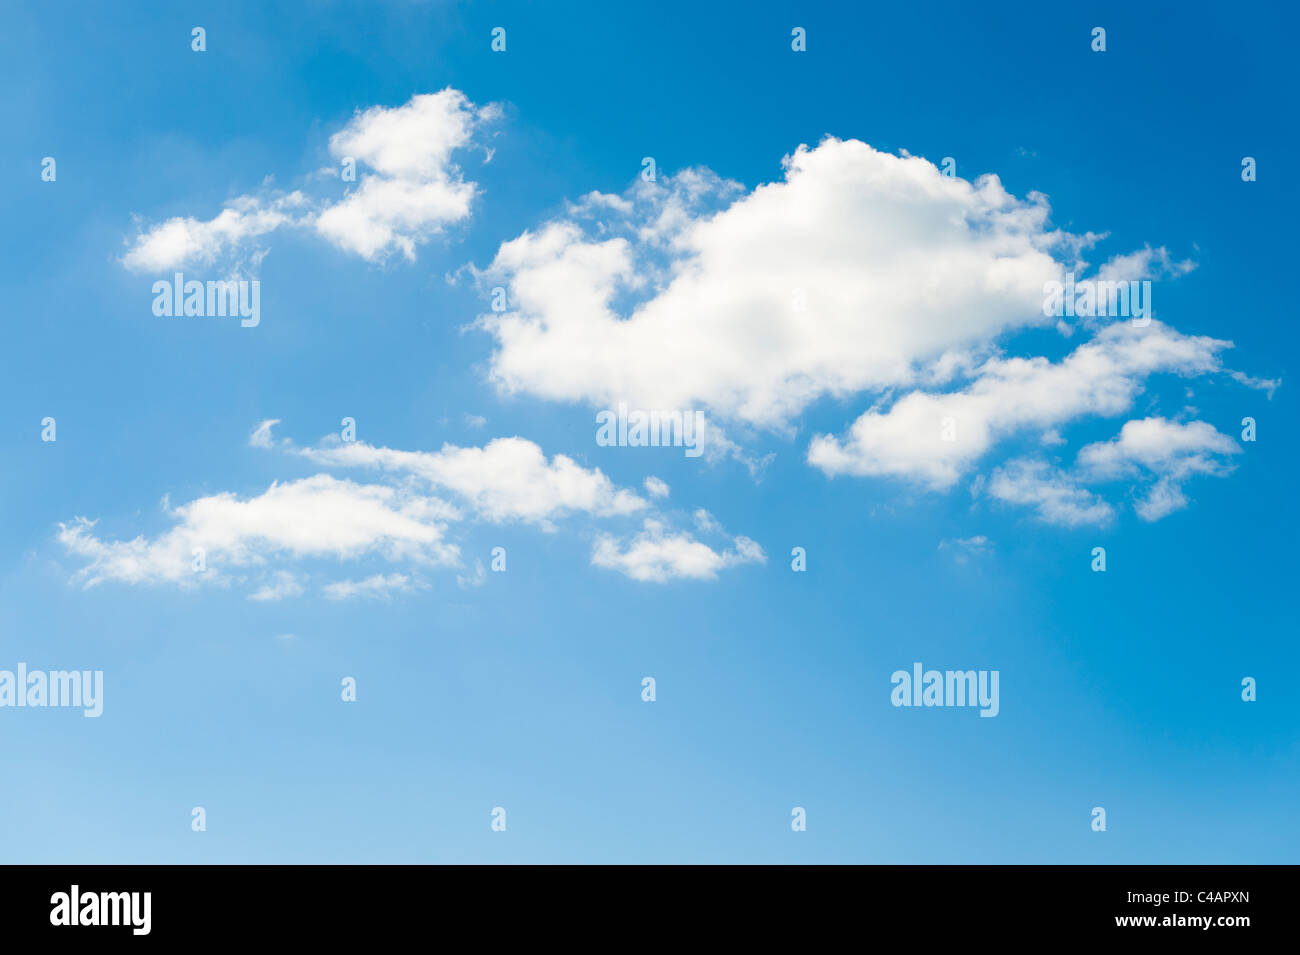 fluffy white Cumulus Humilis or Cumulus fractus clouds on a fine bright sunny day - Stock Image